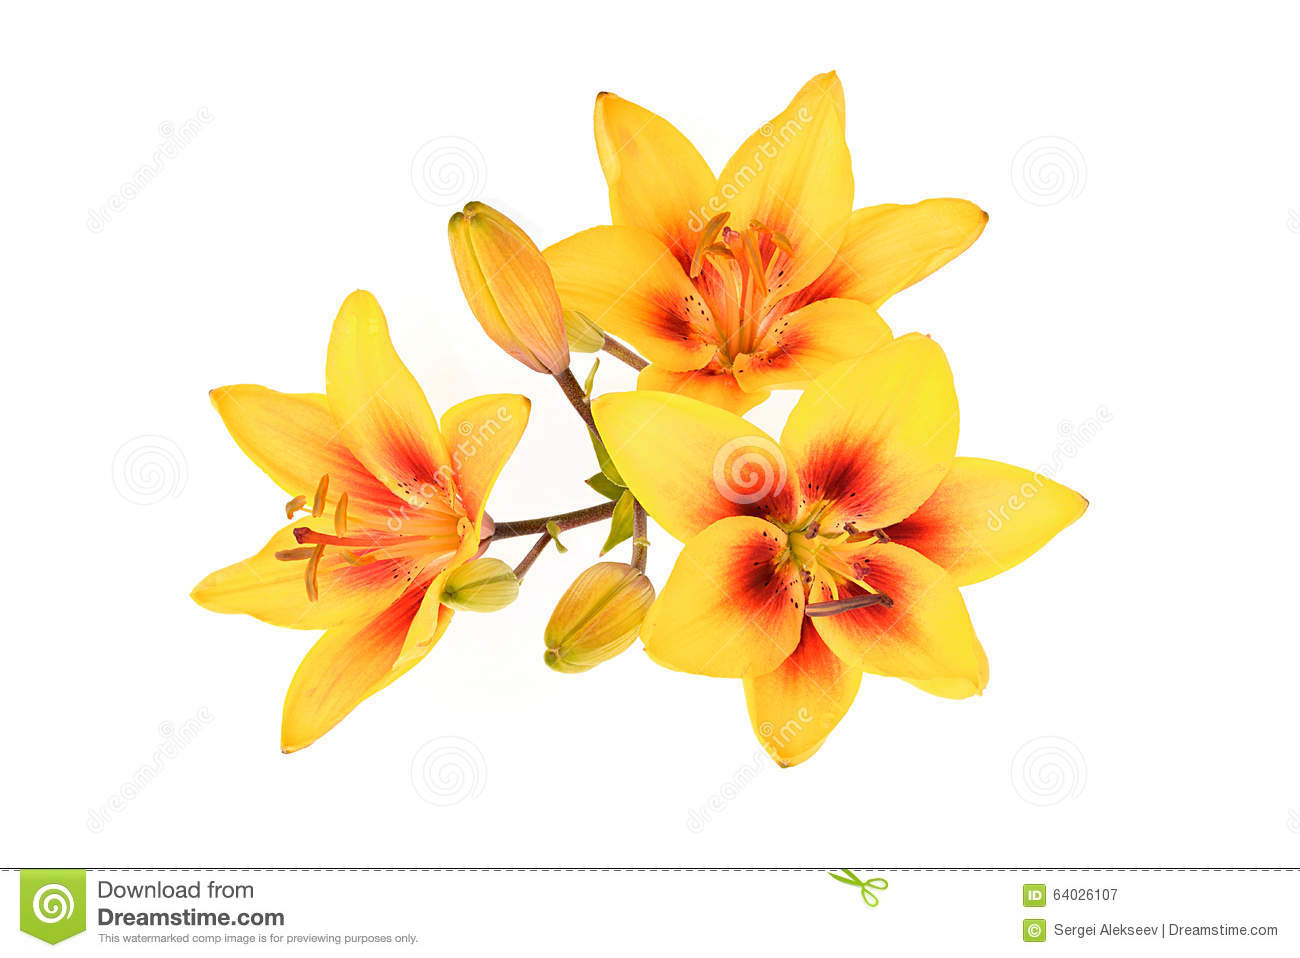 Inflorescence yellow lily latin name lilium stock image image download inflorescence yellow lily latin name lilium stock image image of mightylinksfo